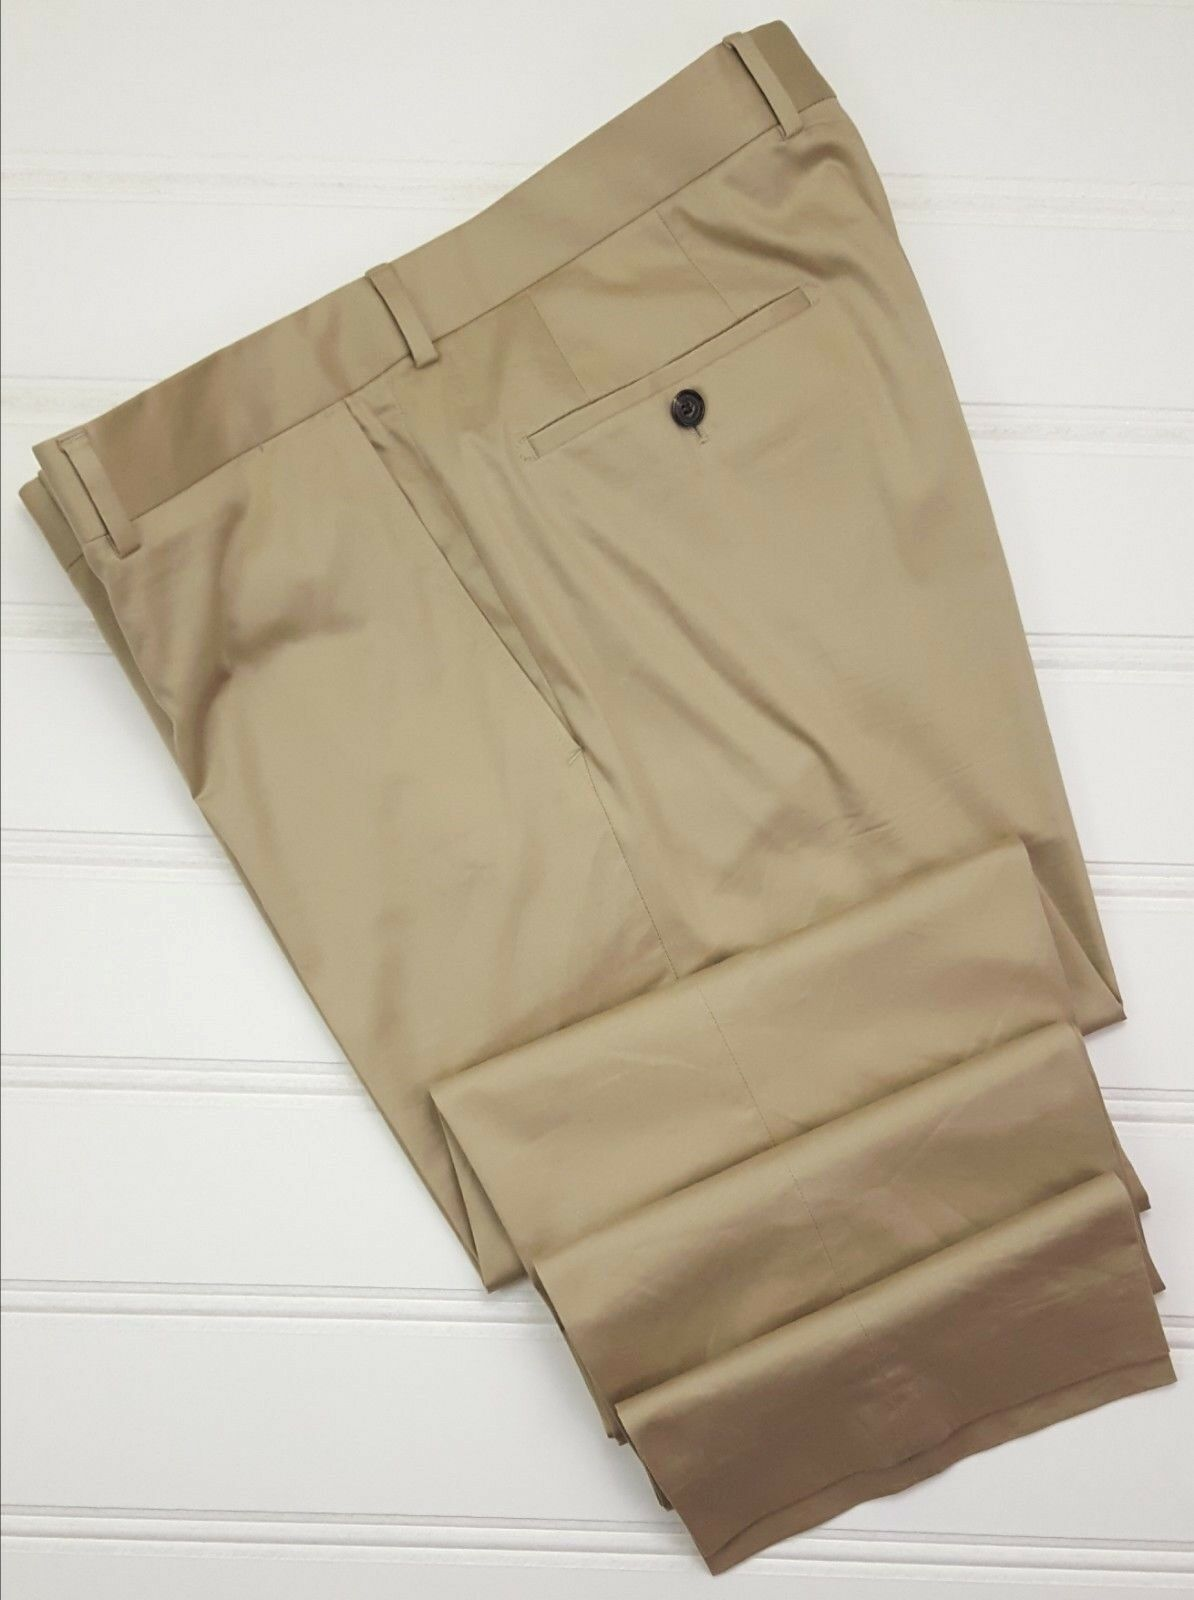 Hugo Boss Pants 37x35 Beige Flat Front Trouser Cotton Blend Mens Size Pasini 2